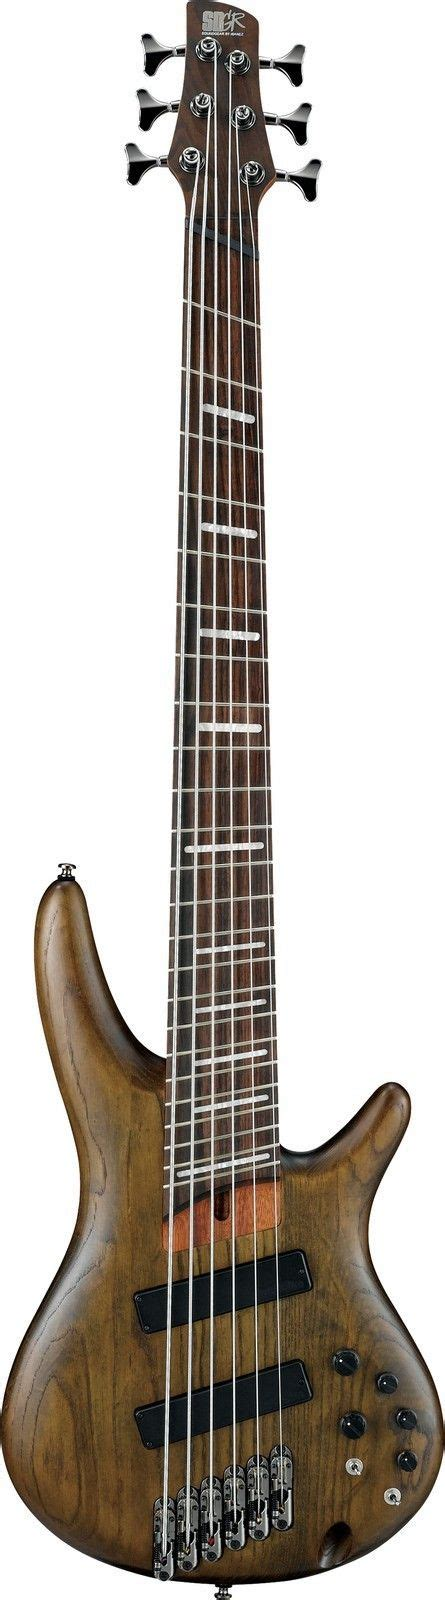 fanned fret 6 string bass 383 best bass ibanez images on pinterest bass guitars